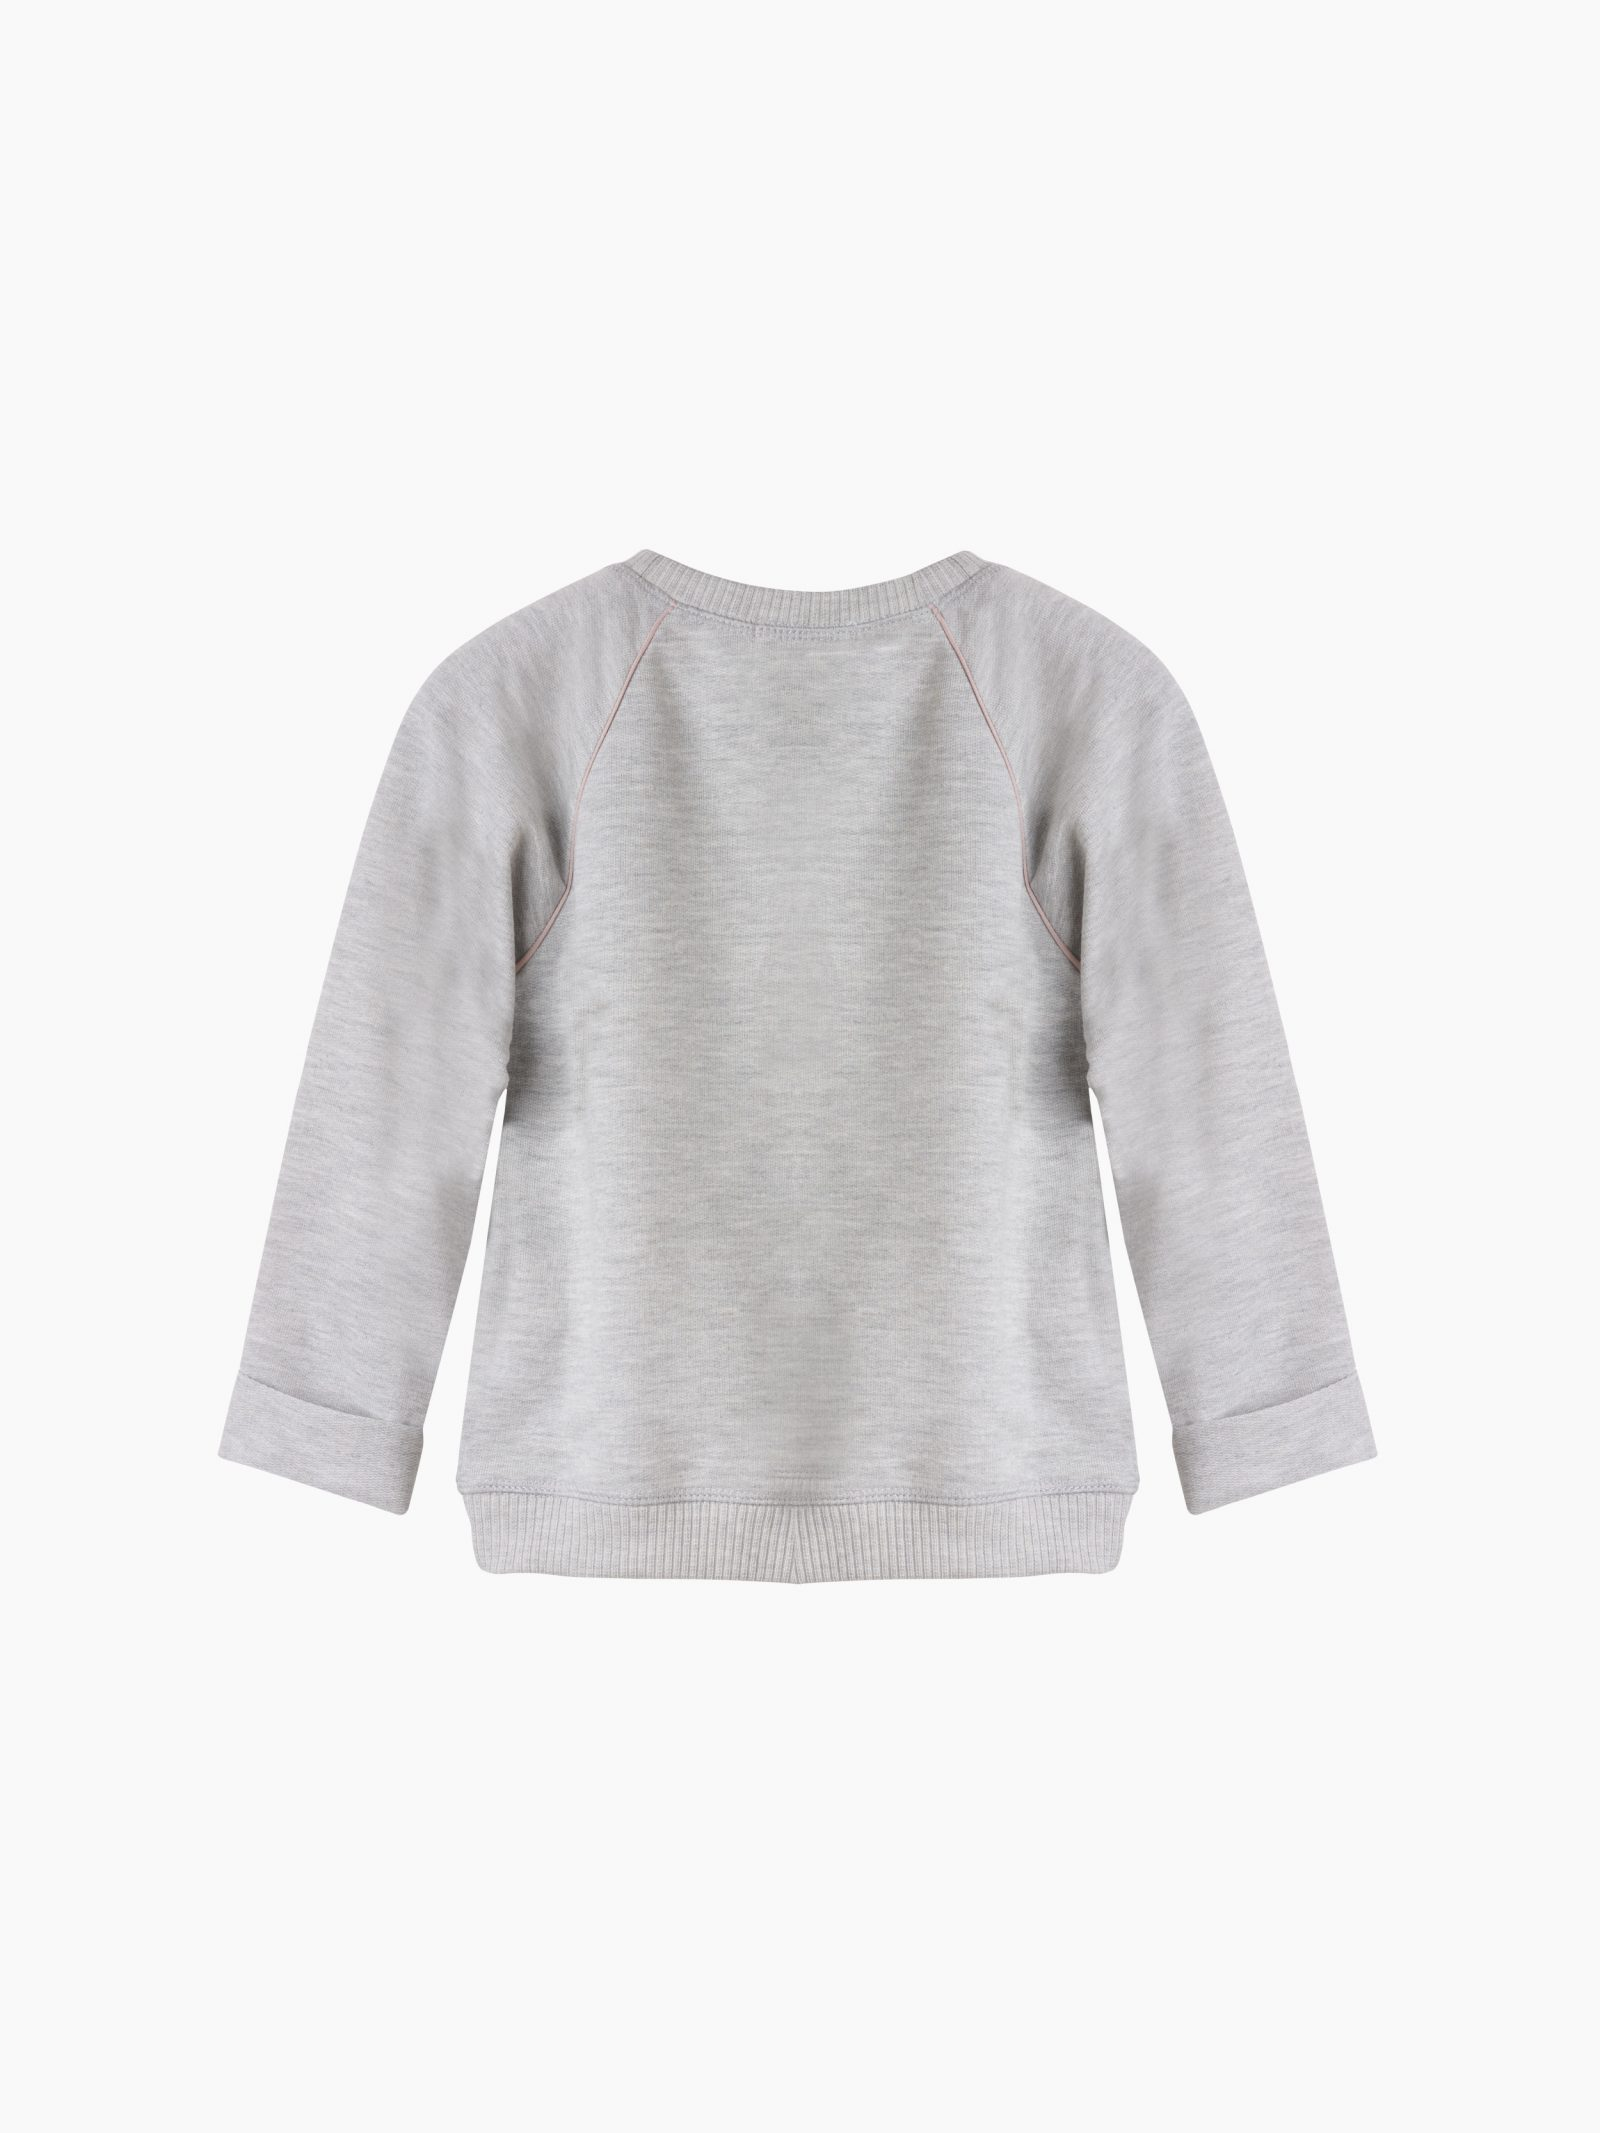 Girls grey and dusky pink slouchy sweatshirt